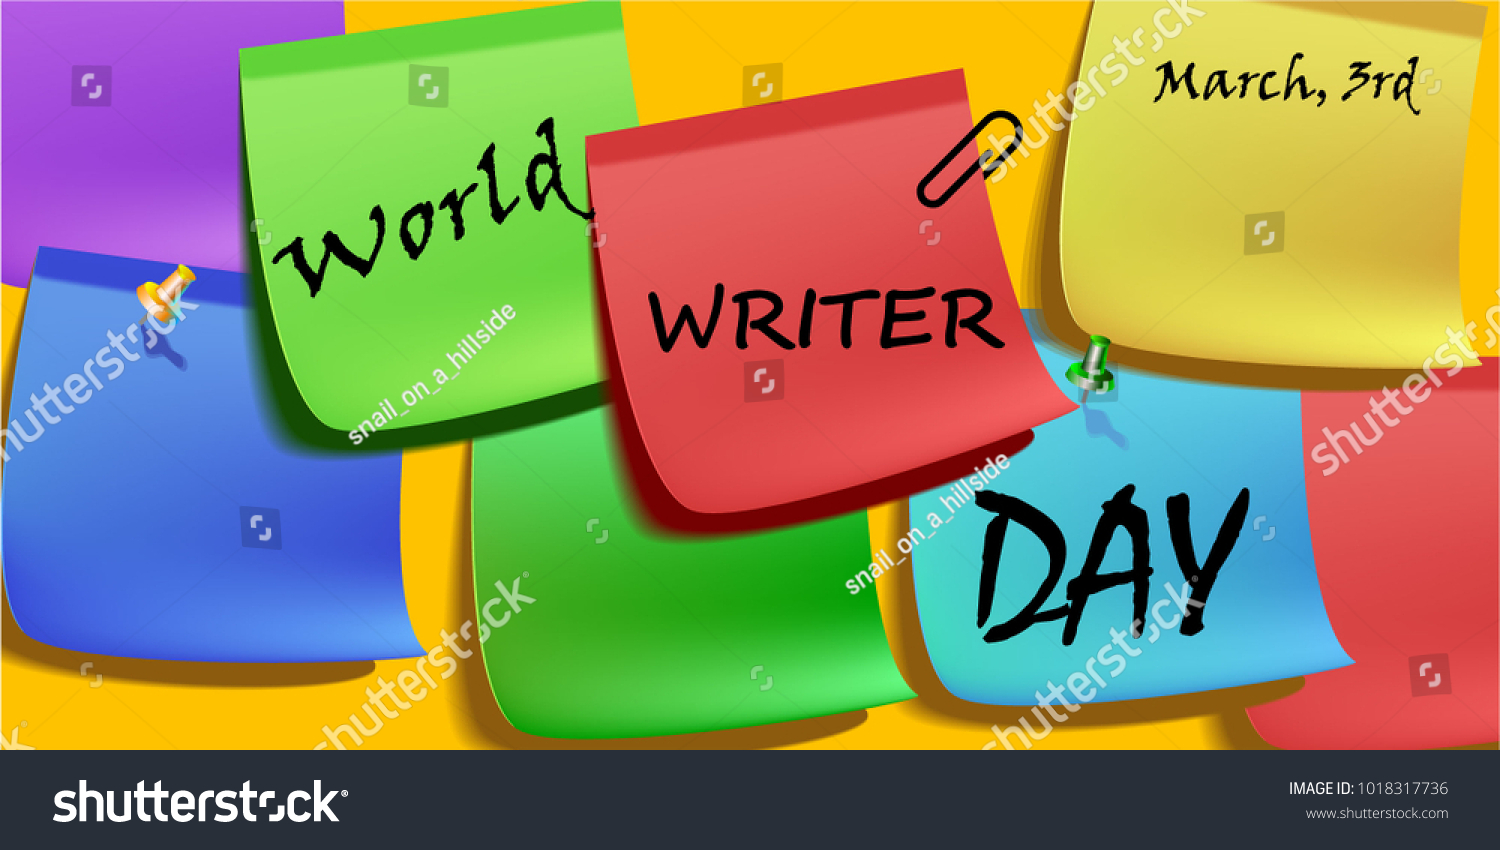 Greeting card writer images greeting card examples world writer day greeting card colorful stock vector 1018317736 world writer day greeting card with colorful kristyandbryce Choice Image